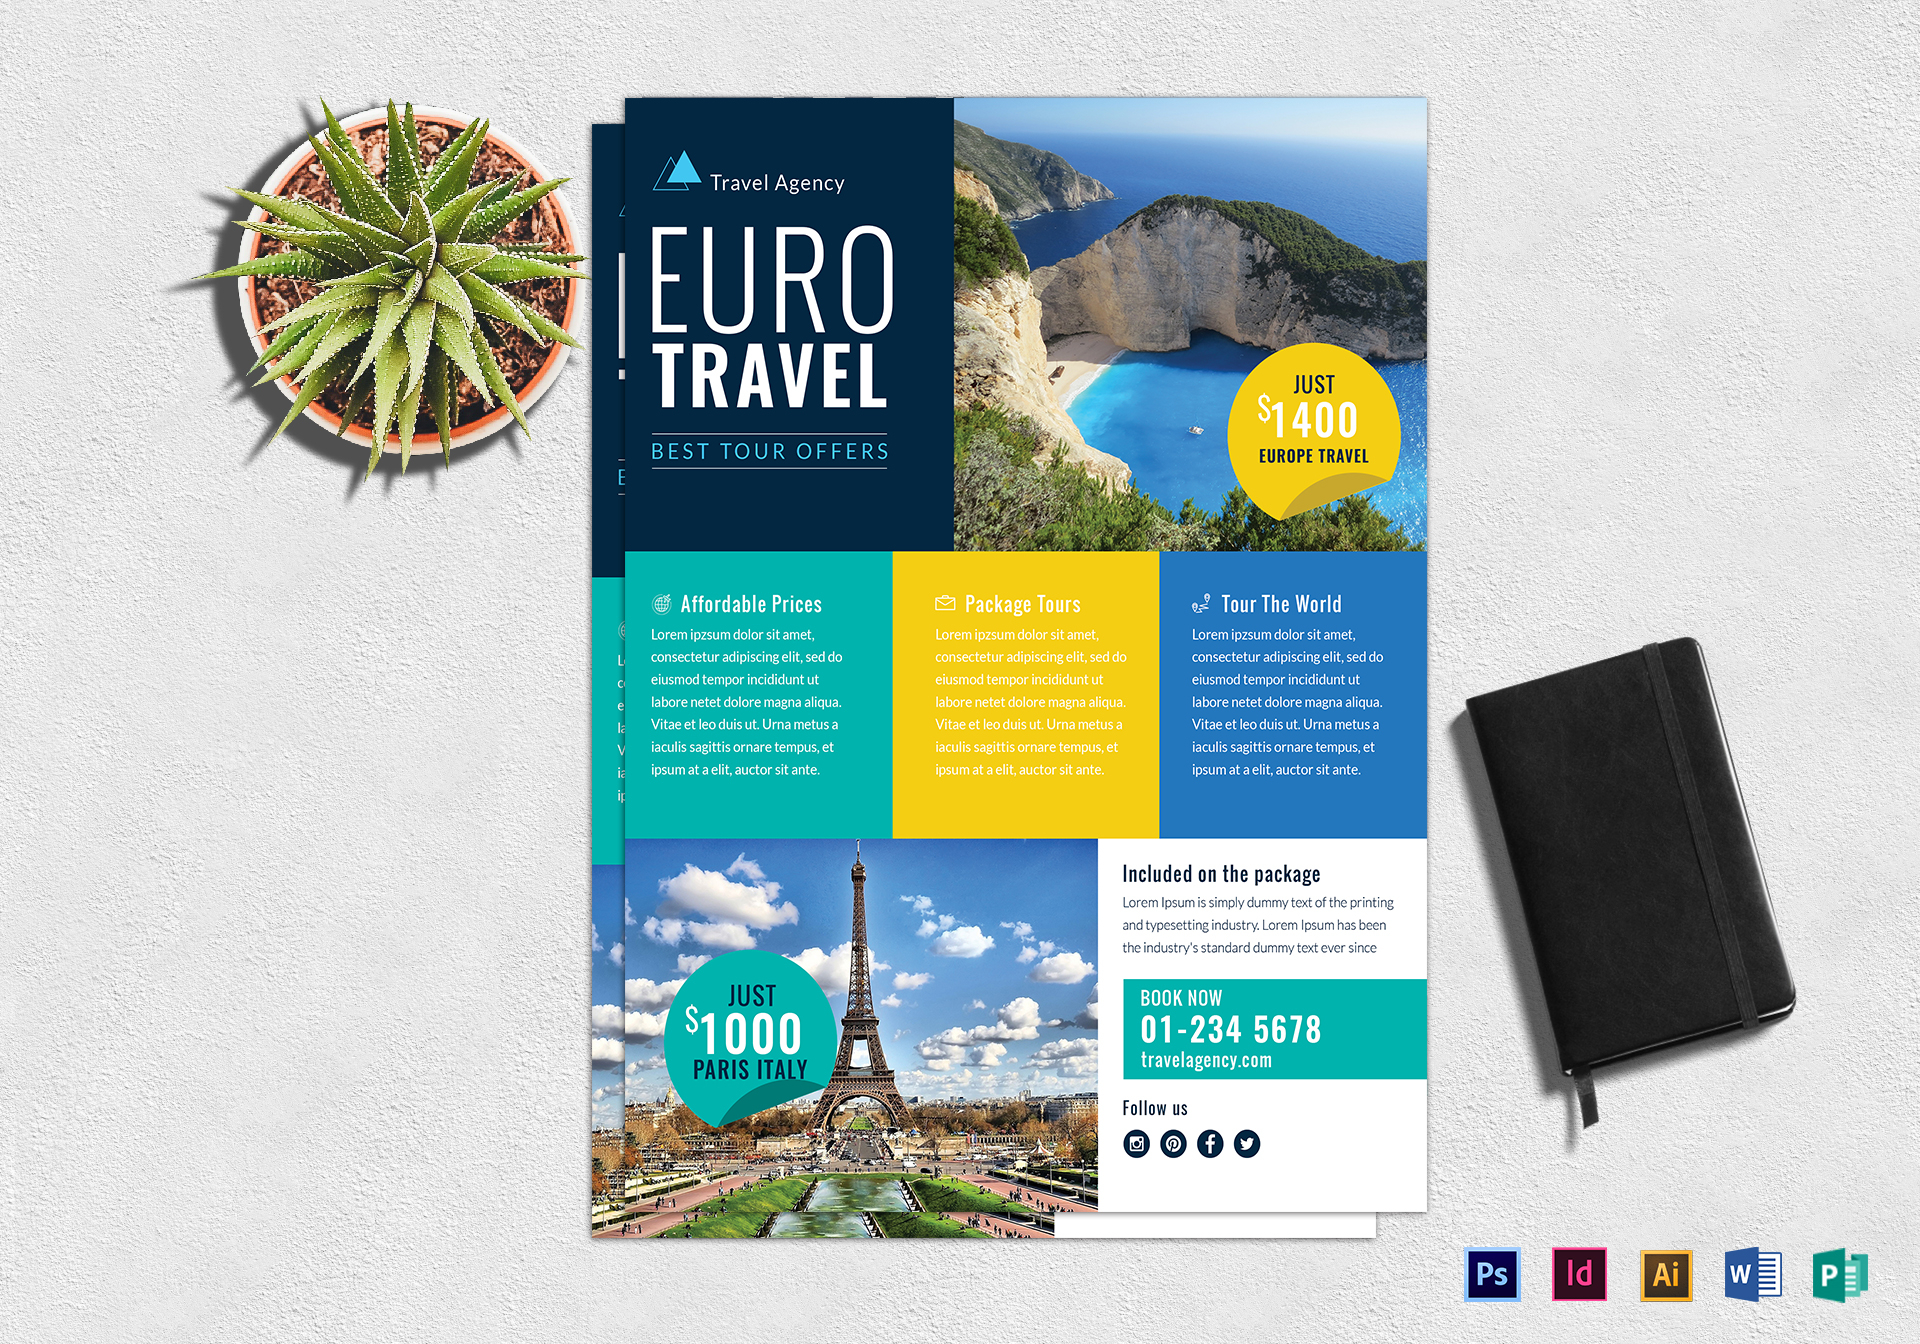 Travel Agency Marketing Flyer Design Template In Psd Word